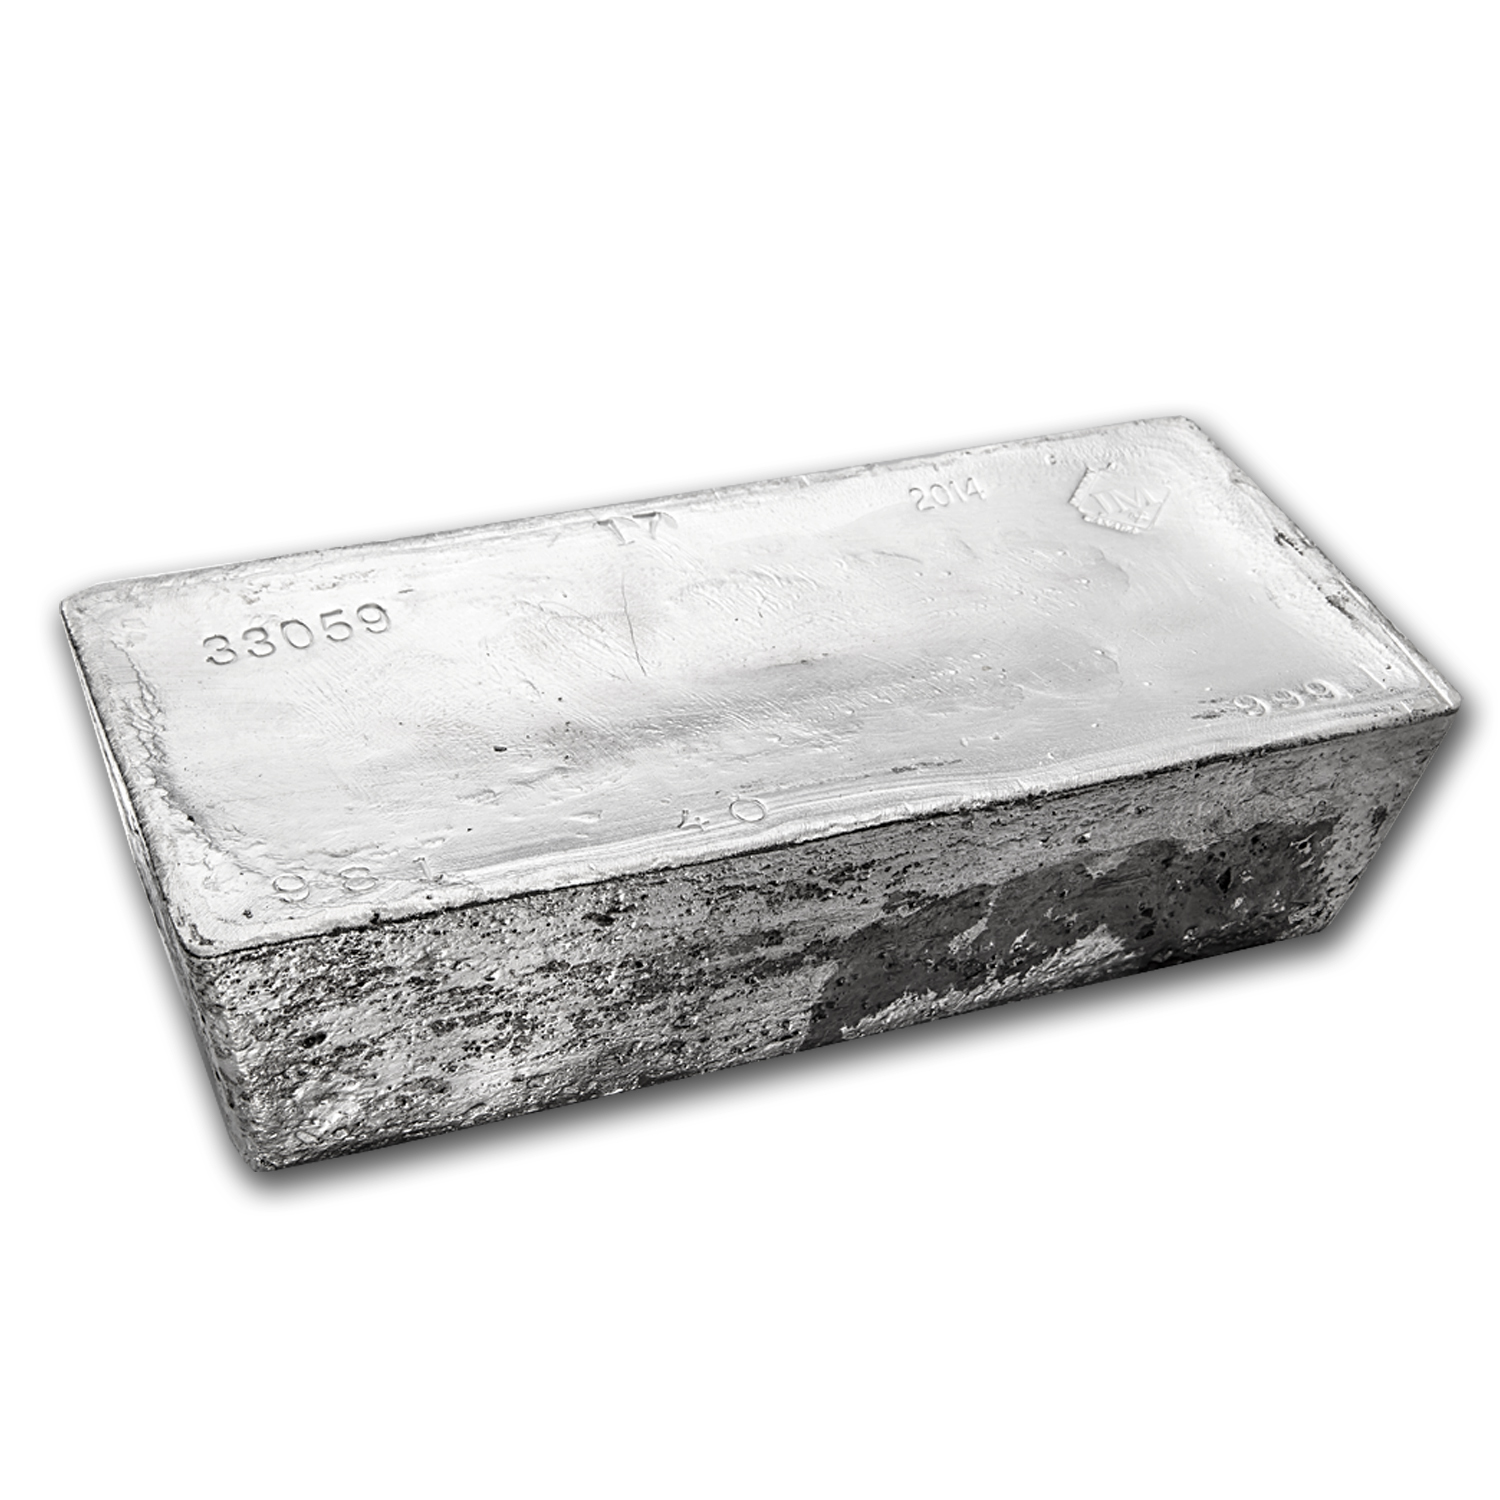 963.00 oz Silver Bars - Johnson Matthey